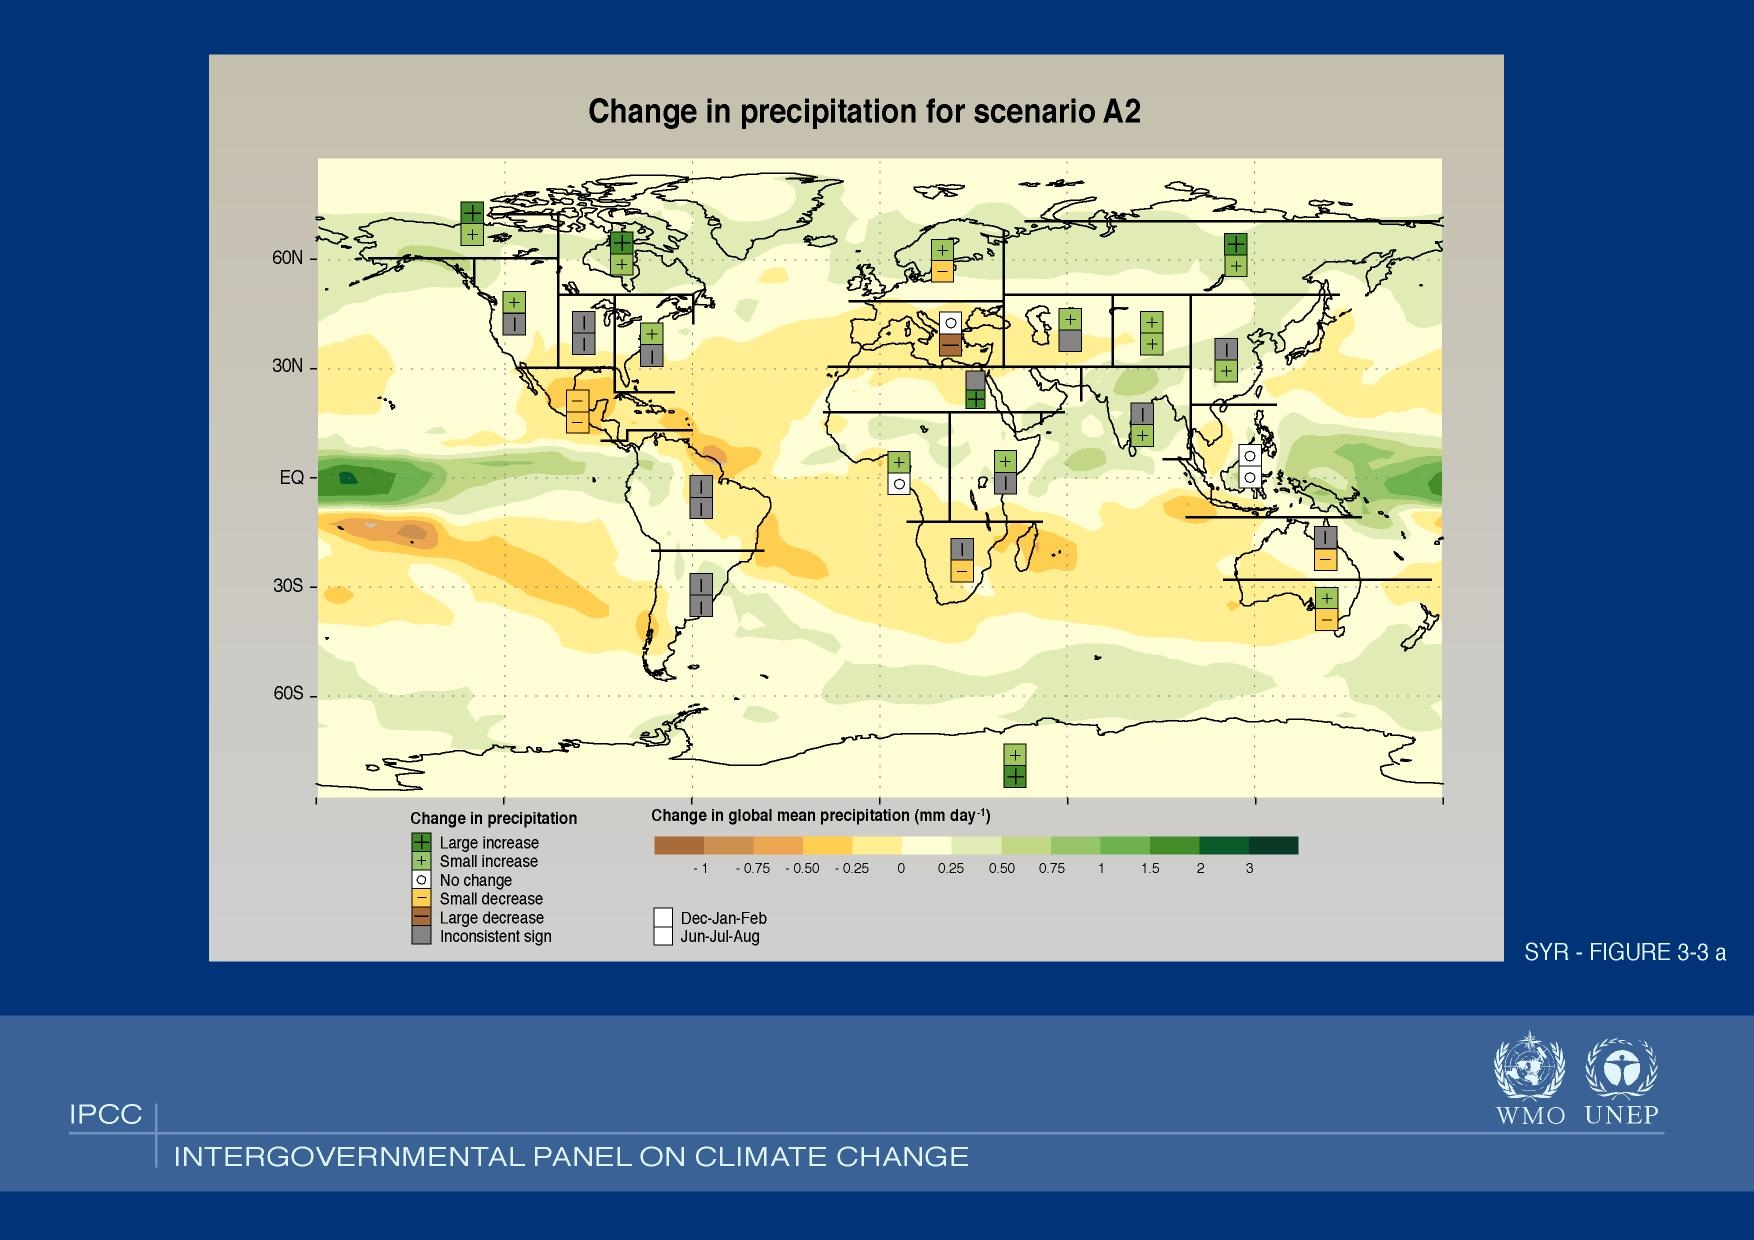 Precipitation Change in the IPCC's Scenario A2